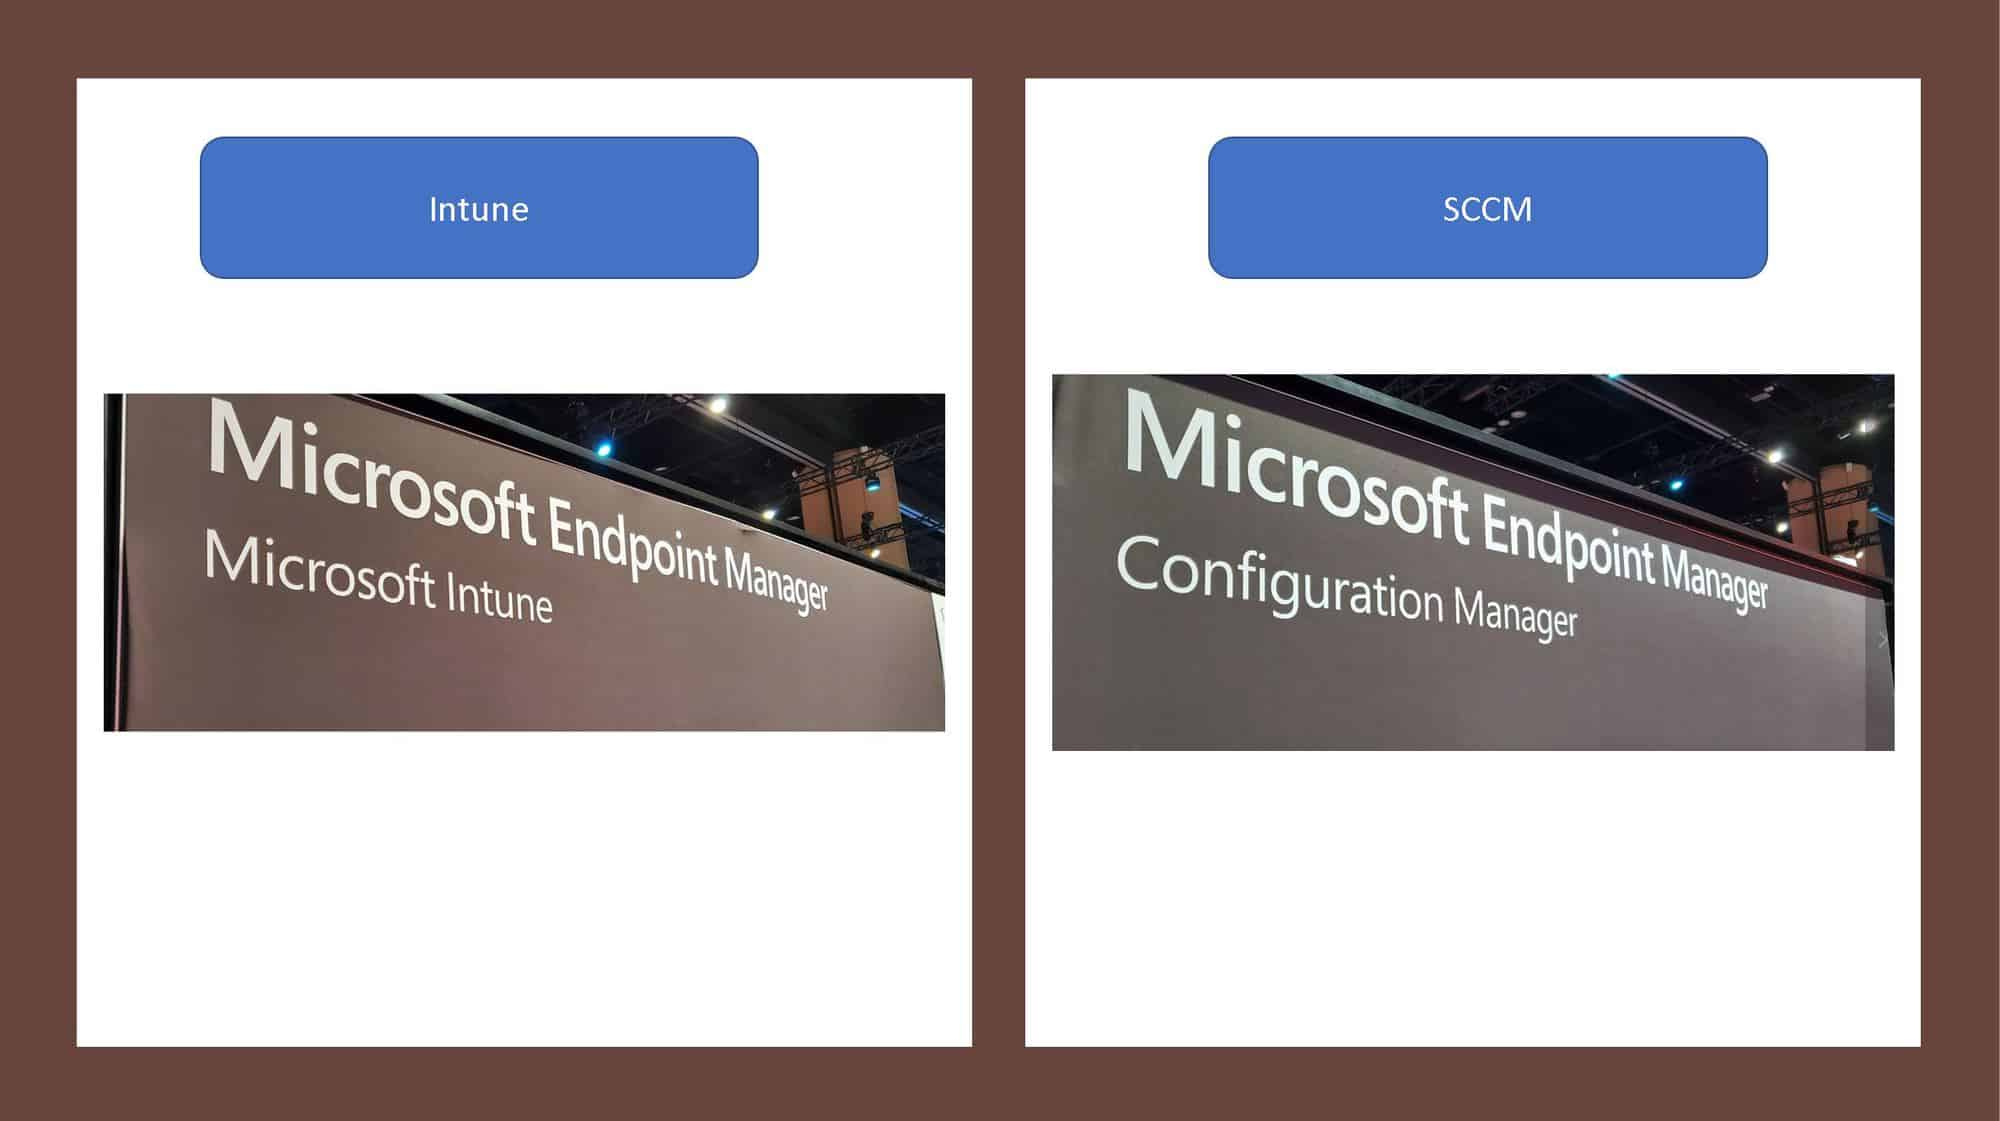 Microsoft Endpoint Manager